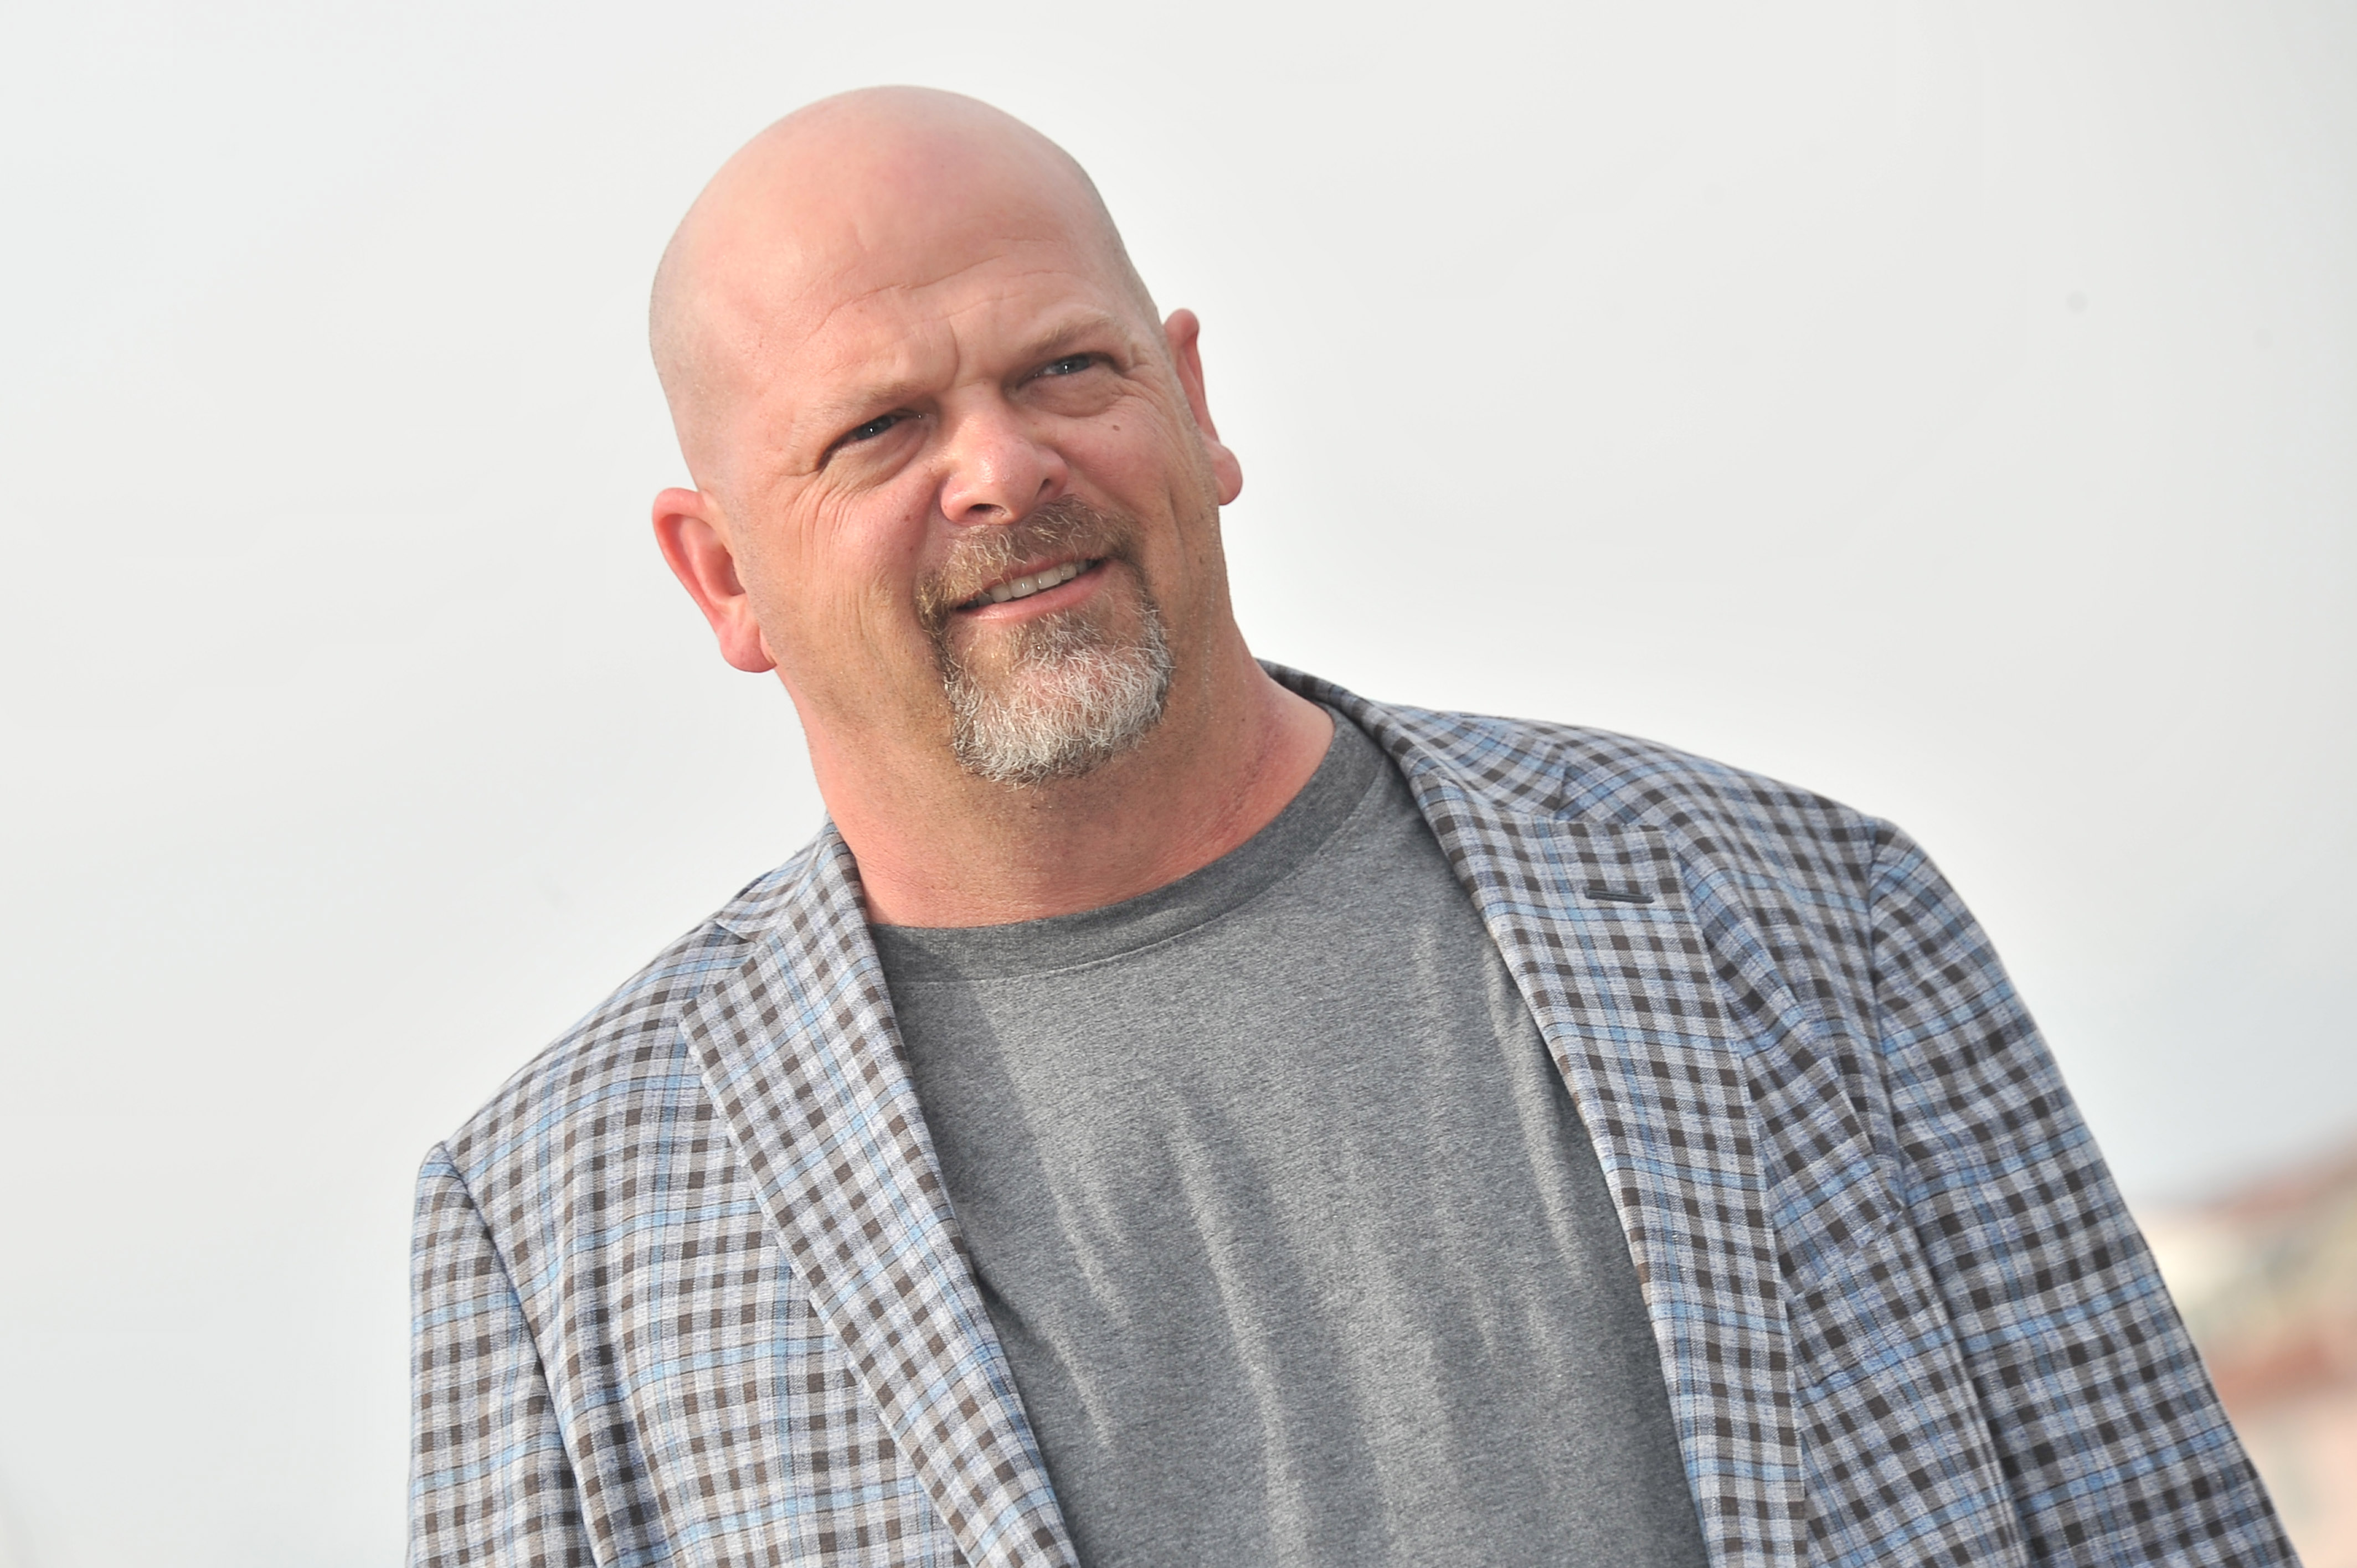 'Pawn Stars' Rick Harrison appraises rare 'Game of Thrones' book, says Americans aren't learning from history thumbnail